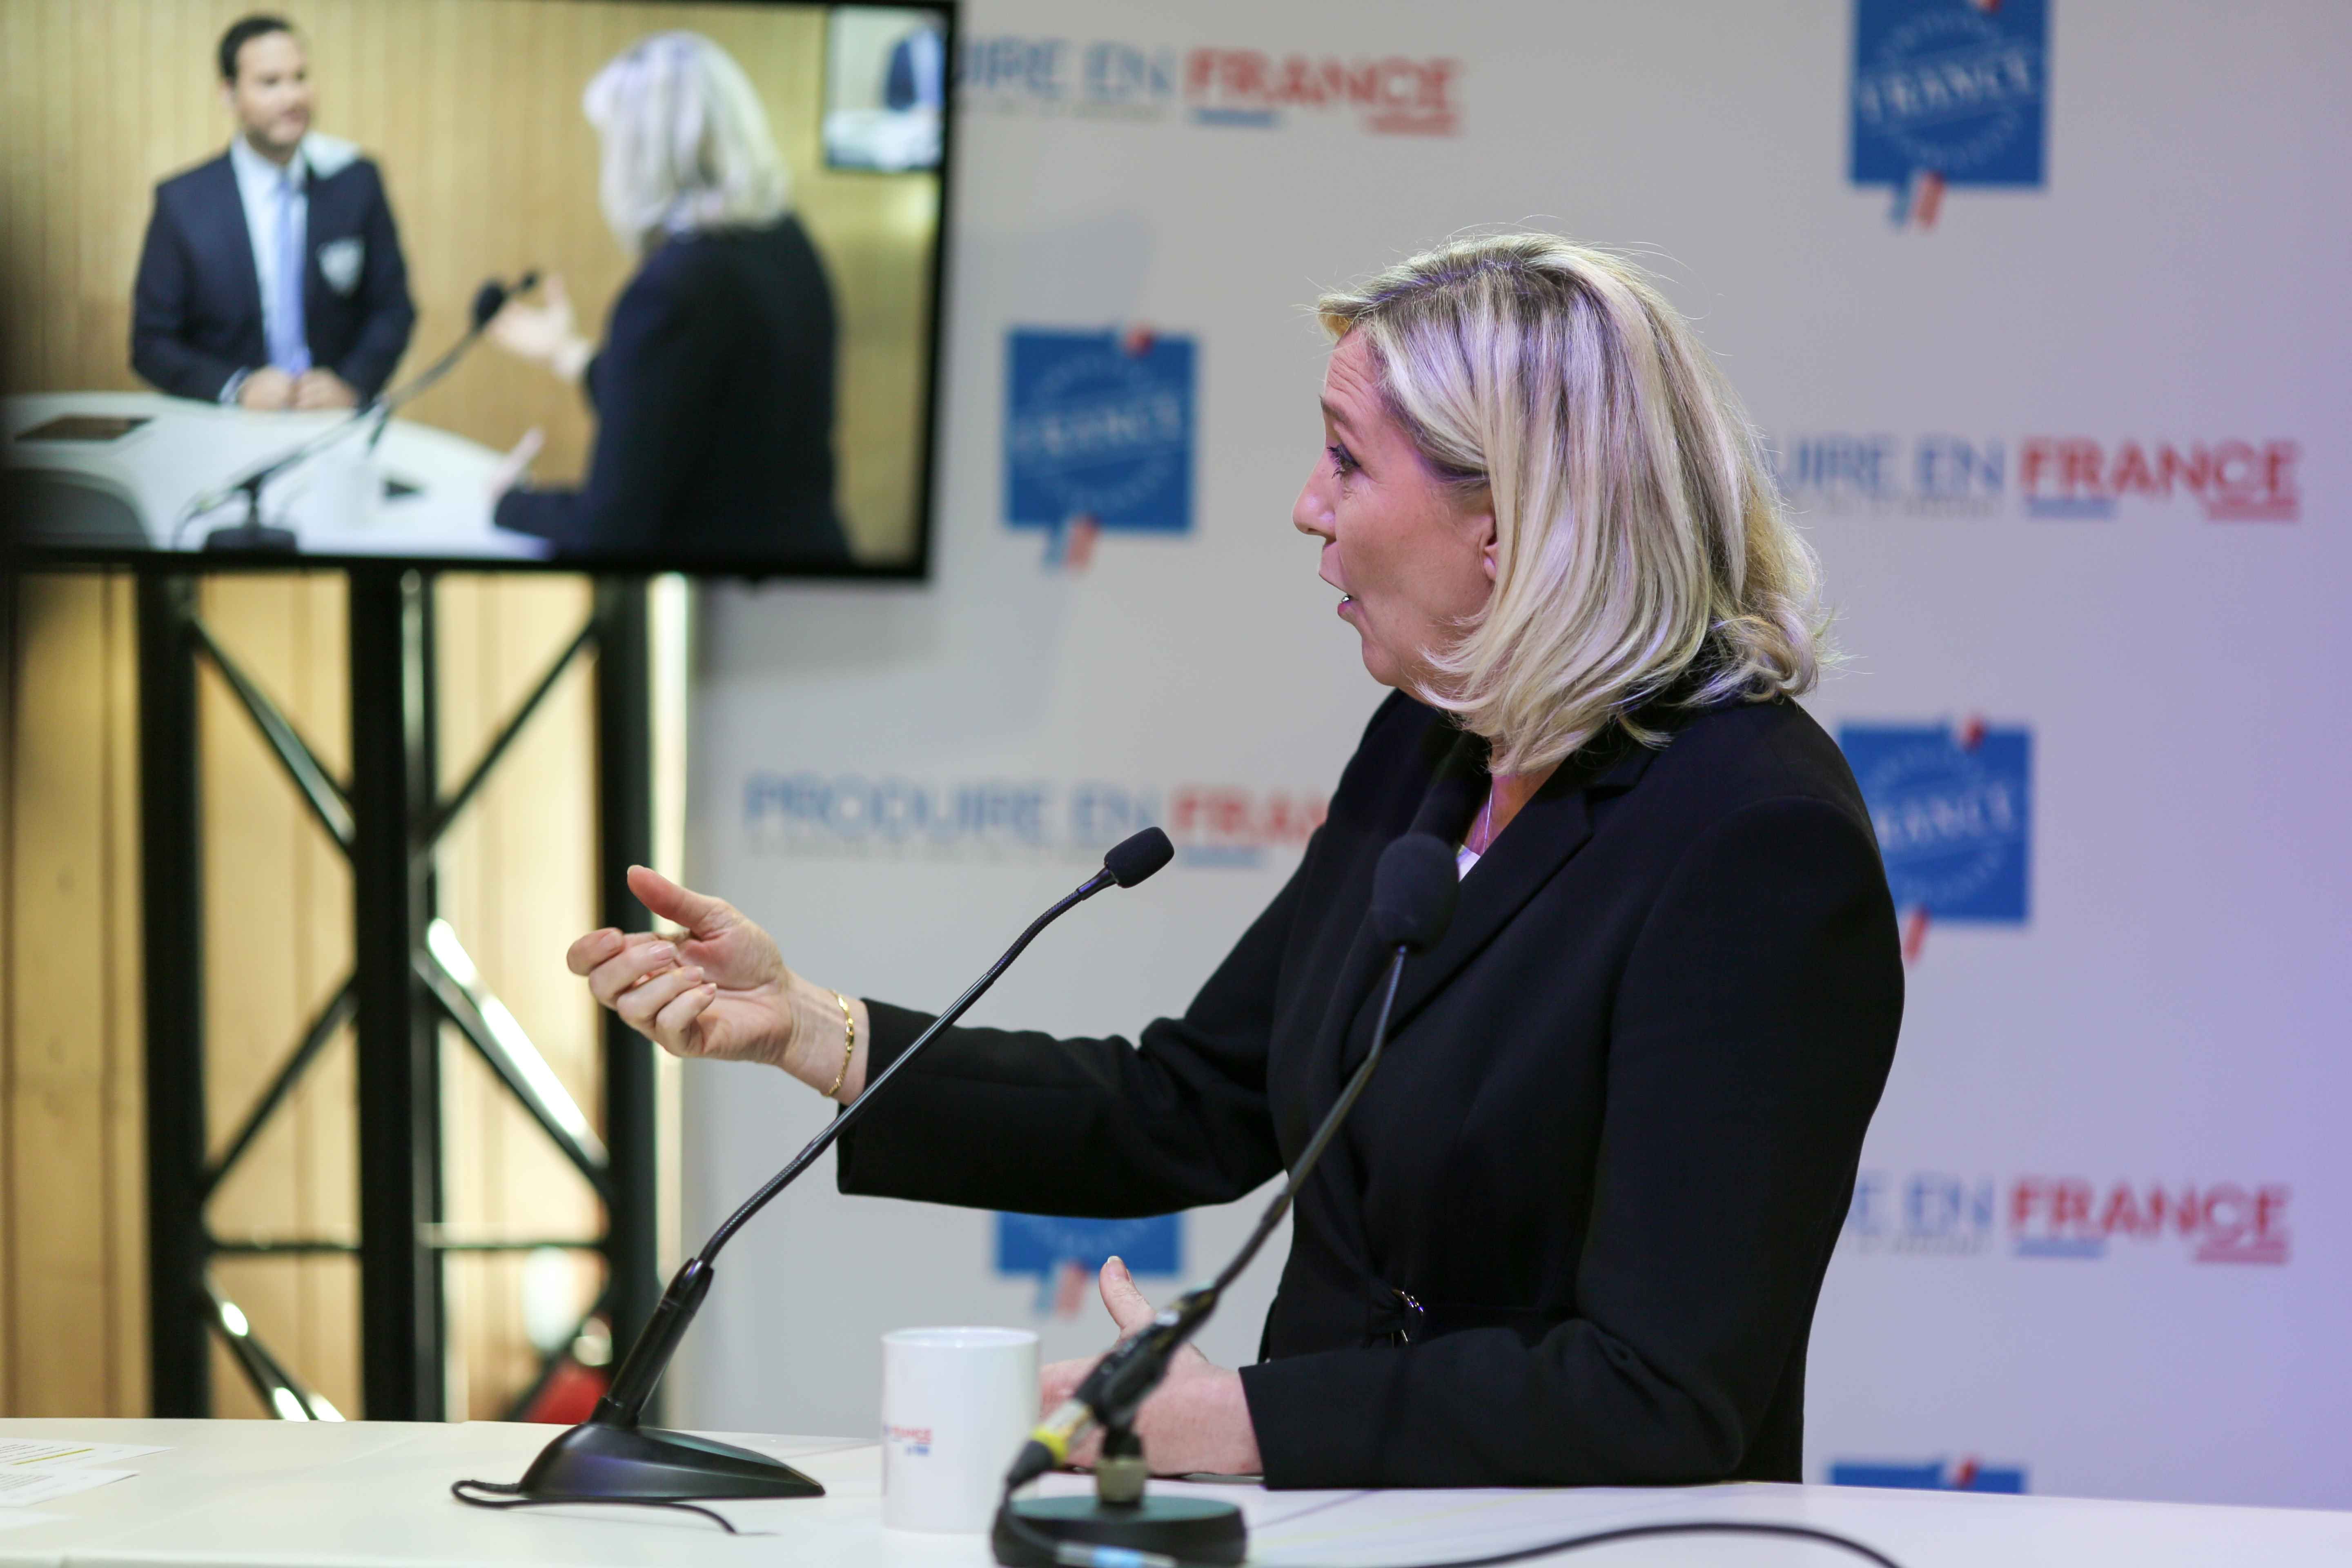 French far-right Rassemblement National (RN) party's president and MP Marine Le Pen (C) talks with the press as she visits the Made in France Fair, on November 9, 2019, at the Porte de Versailles, in Paris.